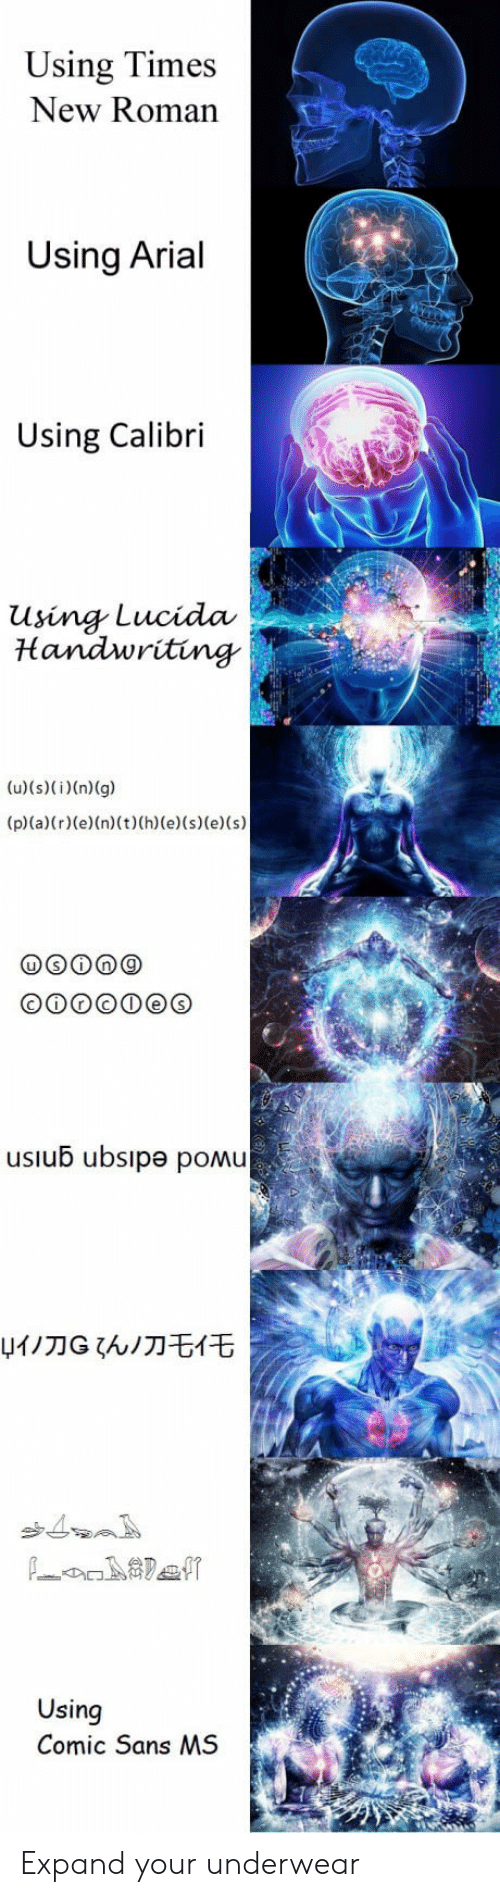 Roman, Ubs, and Comic: Using Times  New Roman  Using Arial  Using Calibri  Using Lucida  Handwriting  usiub ubsıpe pomu  W刀G ζんノ刀モ亻モ  Using  Comic Sans MS Expand your underwear